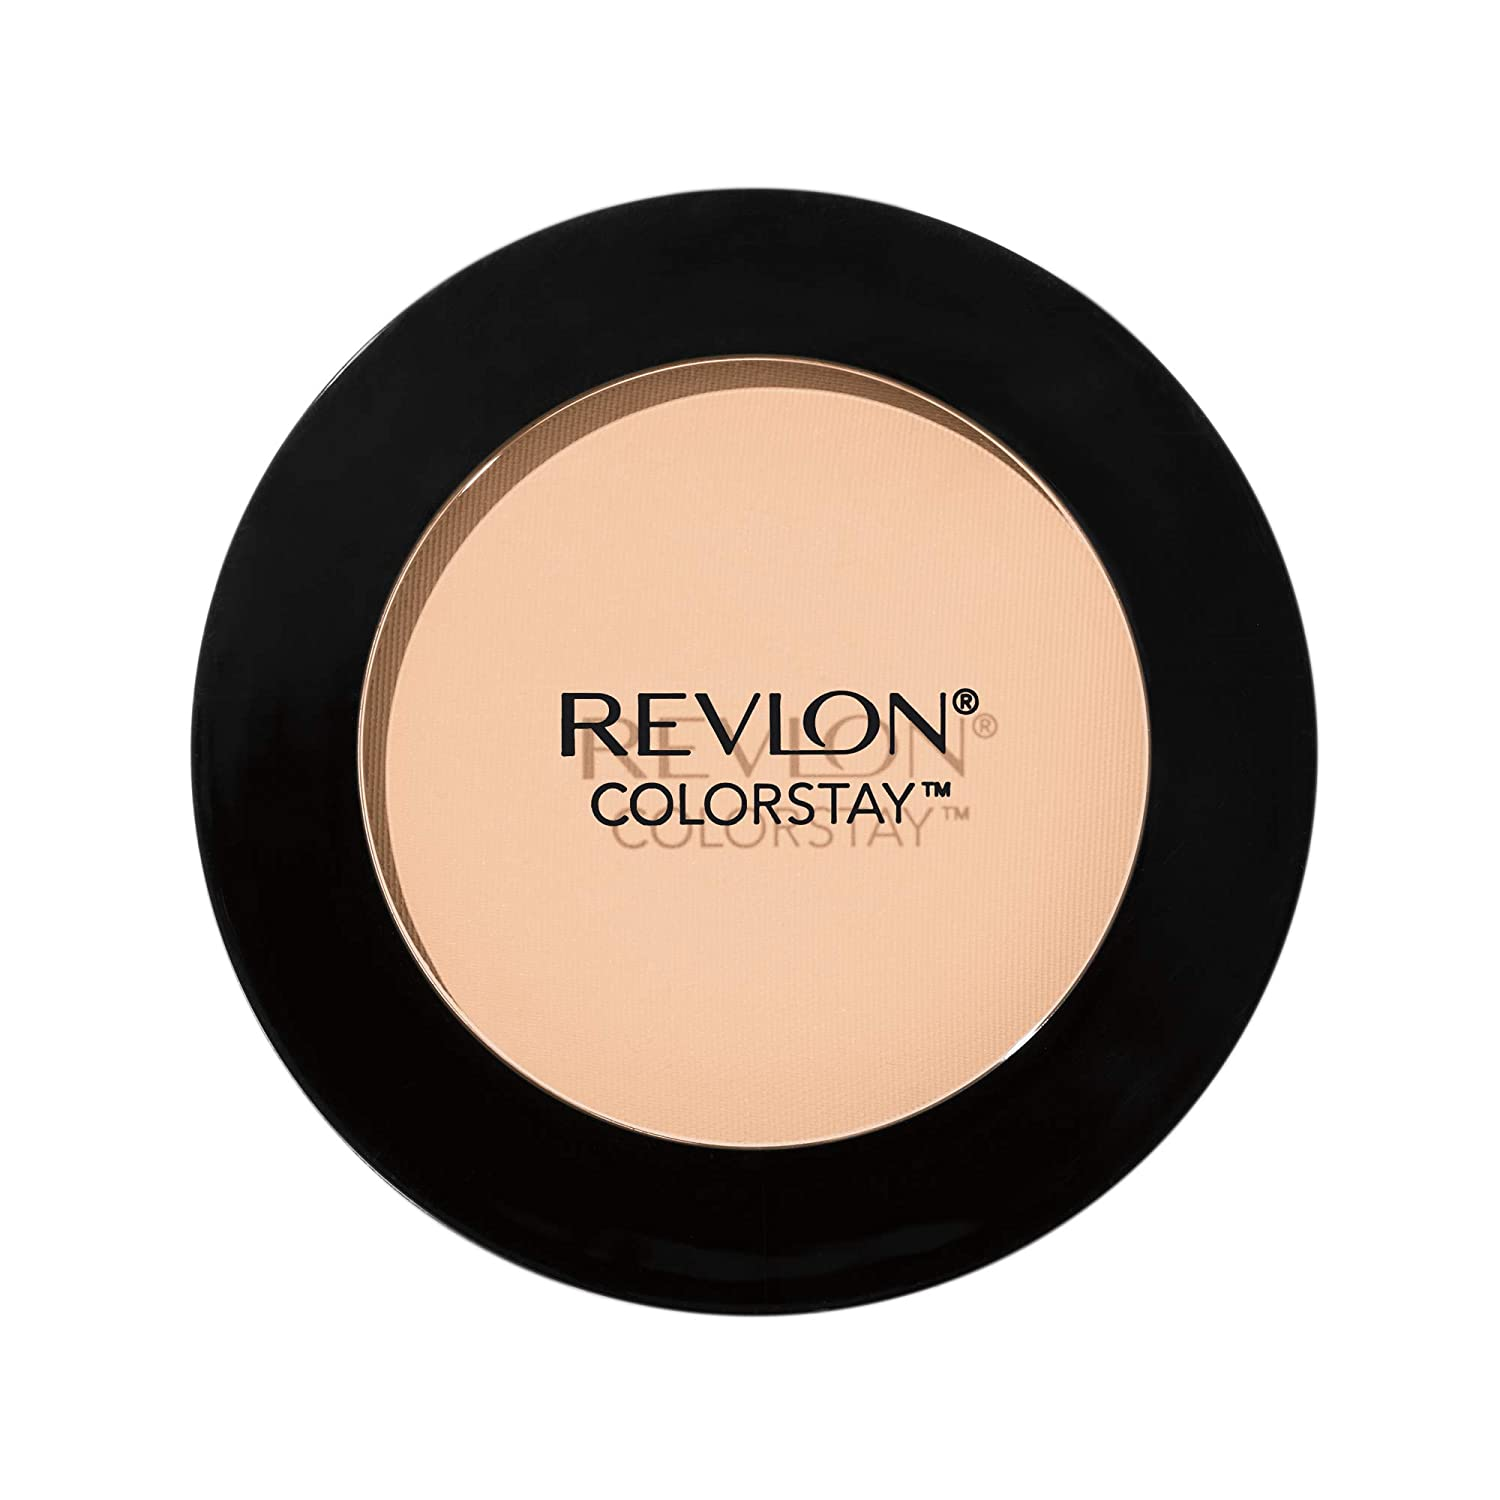 Revlon ColorStay Pressed Powder, Longwearing Oil Free, Fragrance Free, Noncomedogenic, 100 Banana